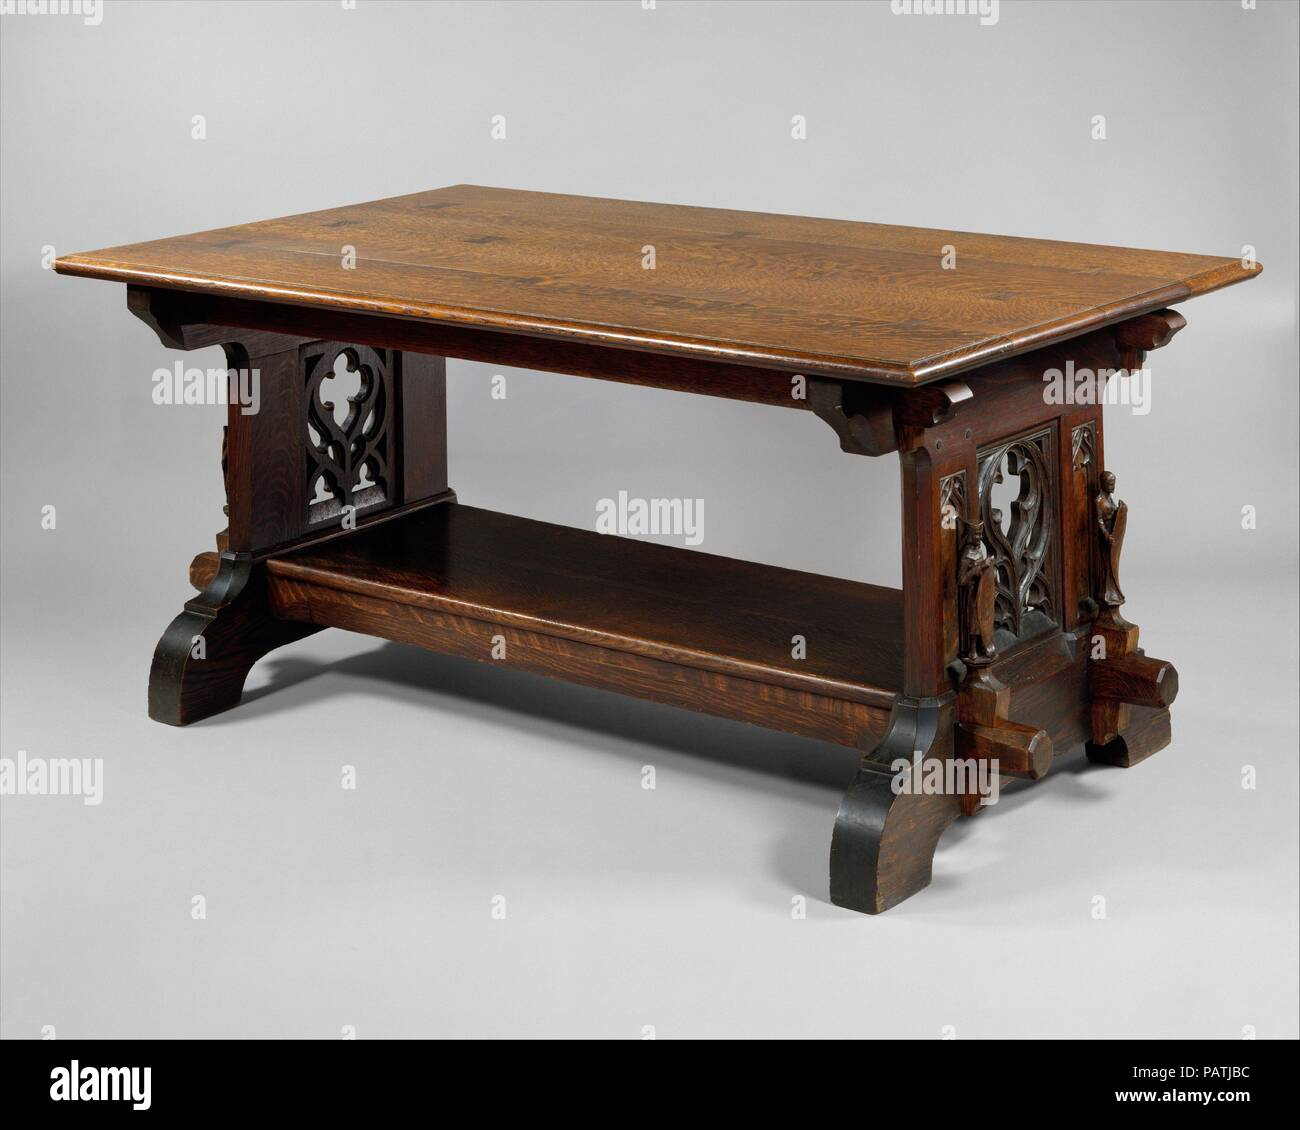 """Library Table. Culture: American. Dimensions: 29 1/2 x 66 x 39 1/2 in. (74.9 x 167.6 x 100.3 cm). Maker: Rose Valley; William Lightfoot Price (1861-1916). Date: 1904.  Rose Valley, a utopian Arts and Crafts colony, was founded in 1901 near Moylan, Pennsylvania, by William Lightfoot Price, a Philadelphia architect, with a coterie of his politically liberal colleagues, clients, and friends. Inspired by the advocates of the British Arts and Crafts movement, John Ruskin and William Morris, the community was established for the """"manufacture of ... materials and products involving artistic handicraf Stock Photo"""